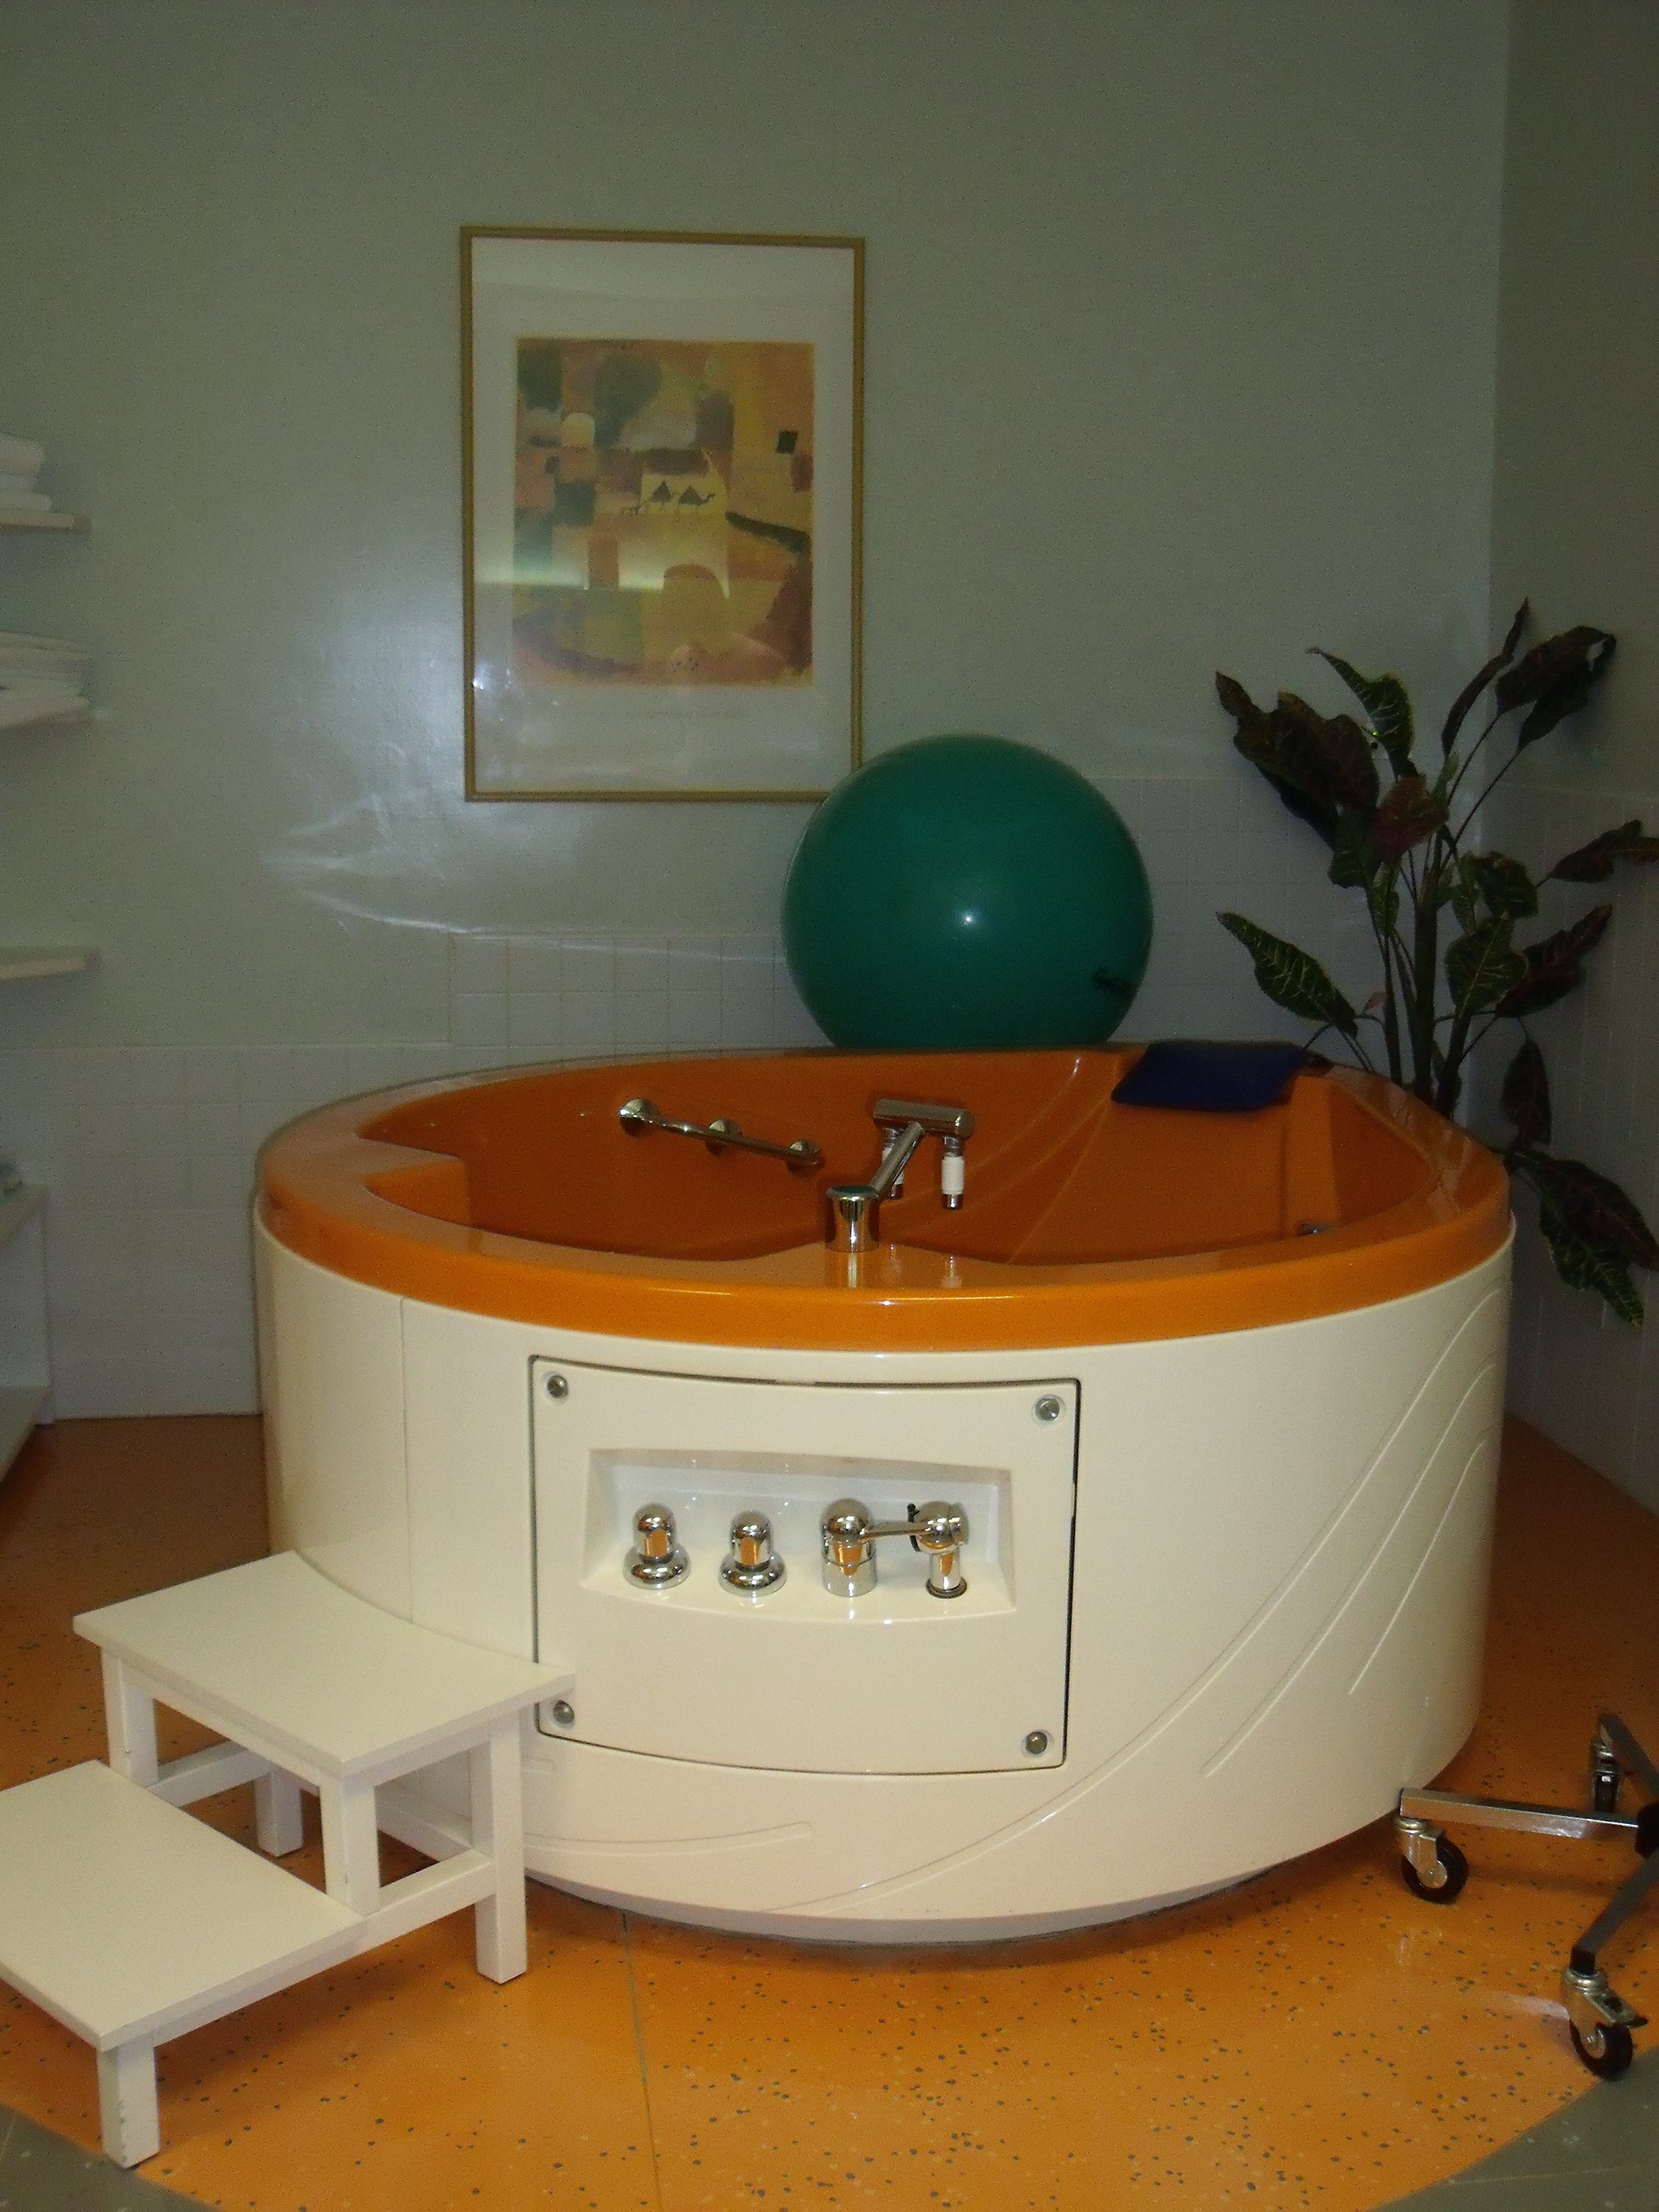 My Birthing Room at a Public Hospital in Italy - I had a wonderful midwife and gave birth in this tub. I did not have an epidural, though one had been ordered along with a doctor to administer it, if needed. After the birth,I stayed in a room with 3 other women. The bathroom was down the hall. Lactation specialists visited daily.Aside from the fathers, no visitors were allowed. There were no translators and only one doctor spoke English. I stayed for three days.We didn't pay a cent.